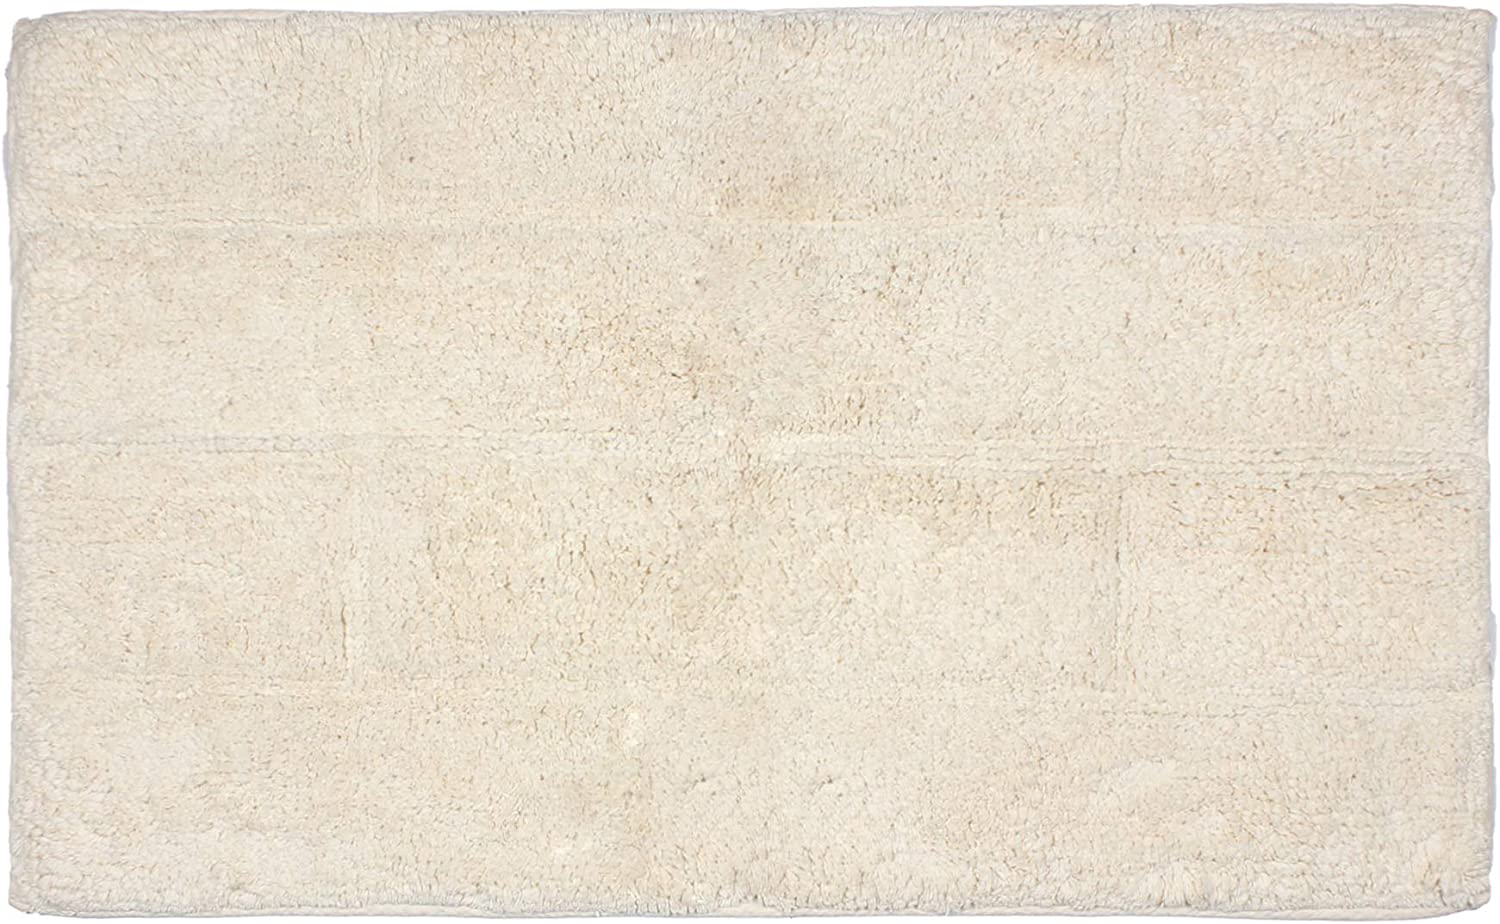 Rectangular Soft Cotton Ivory Bath Rug - Mat for Bathroom, Shower, Bath Tub, Sink, Toilet -(L-34 X W-21)- Ivory